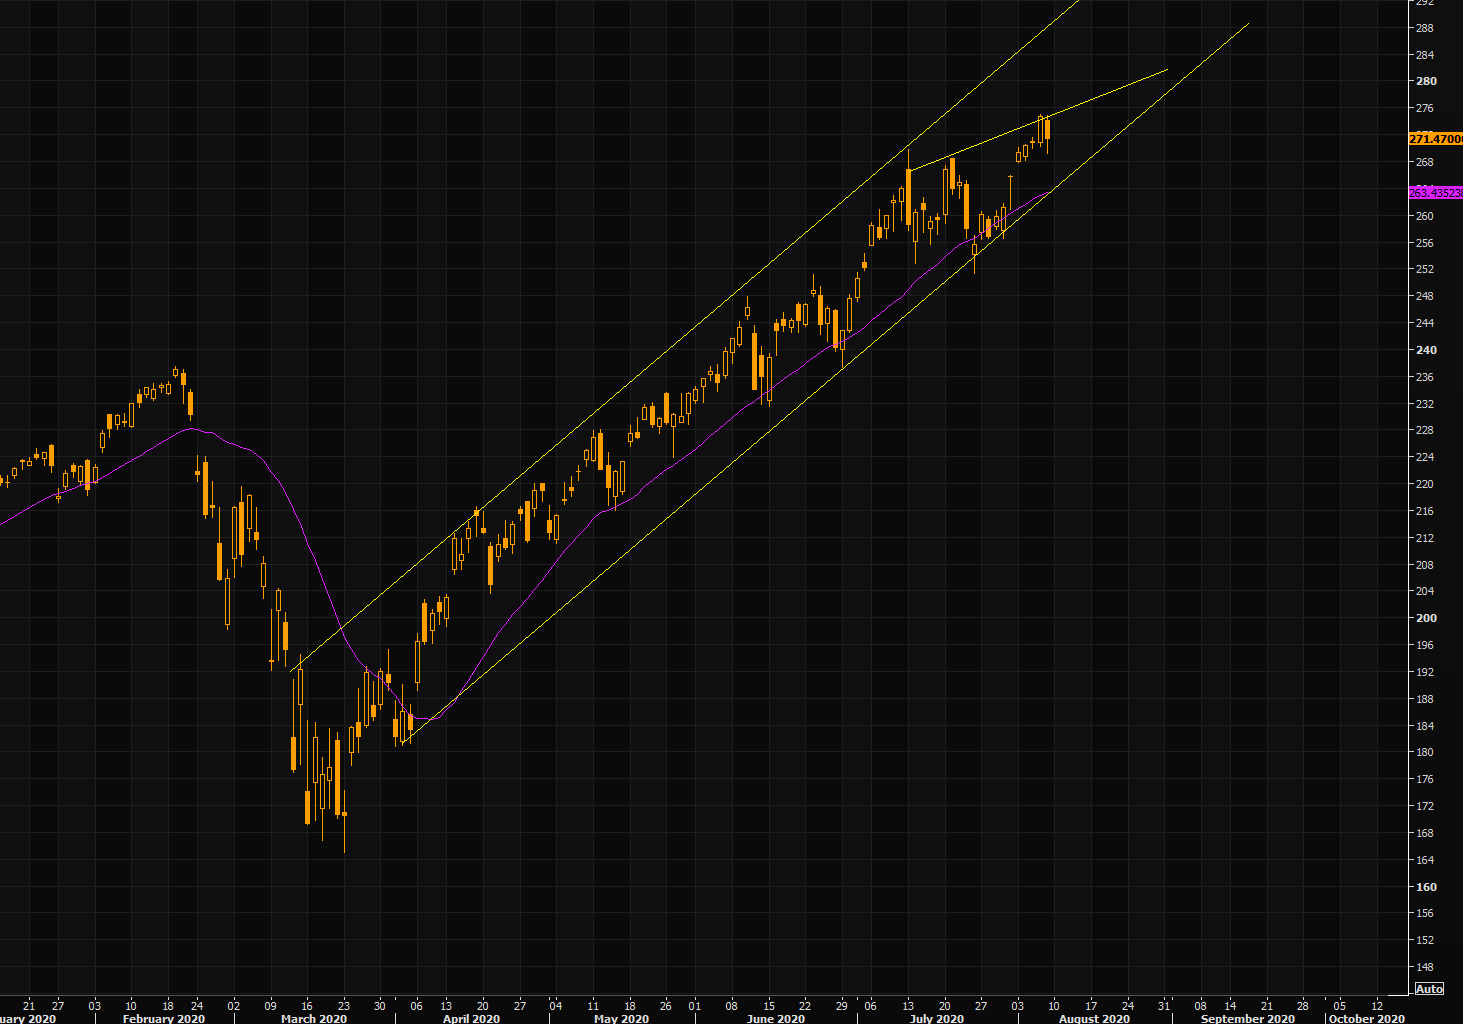 QQQ - trend channel remains intact, but is this losing momentum?